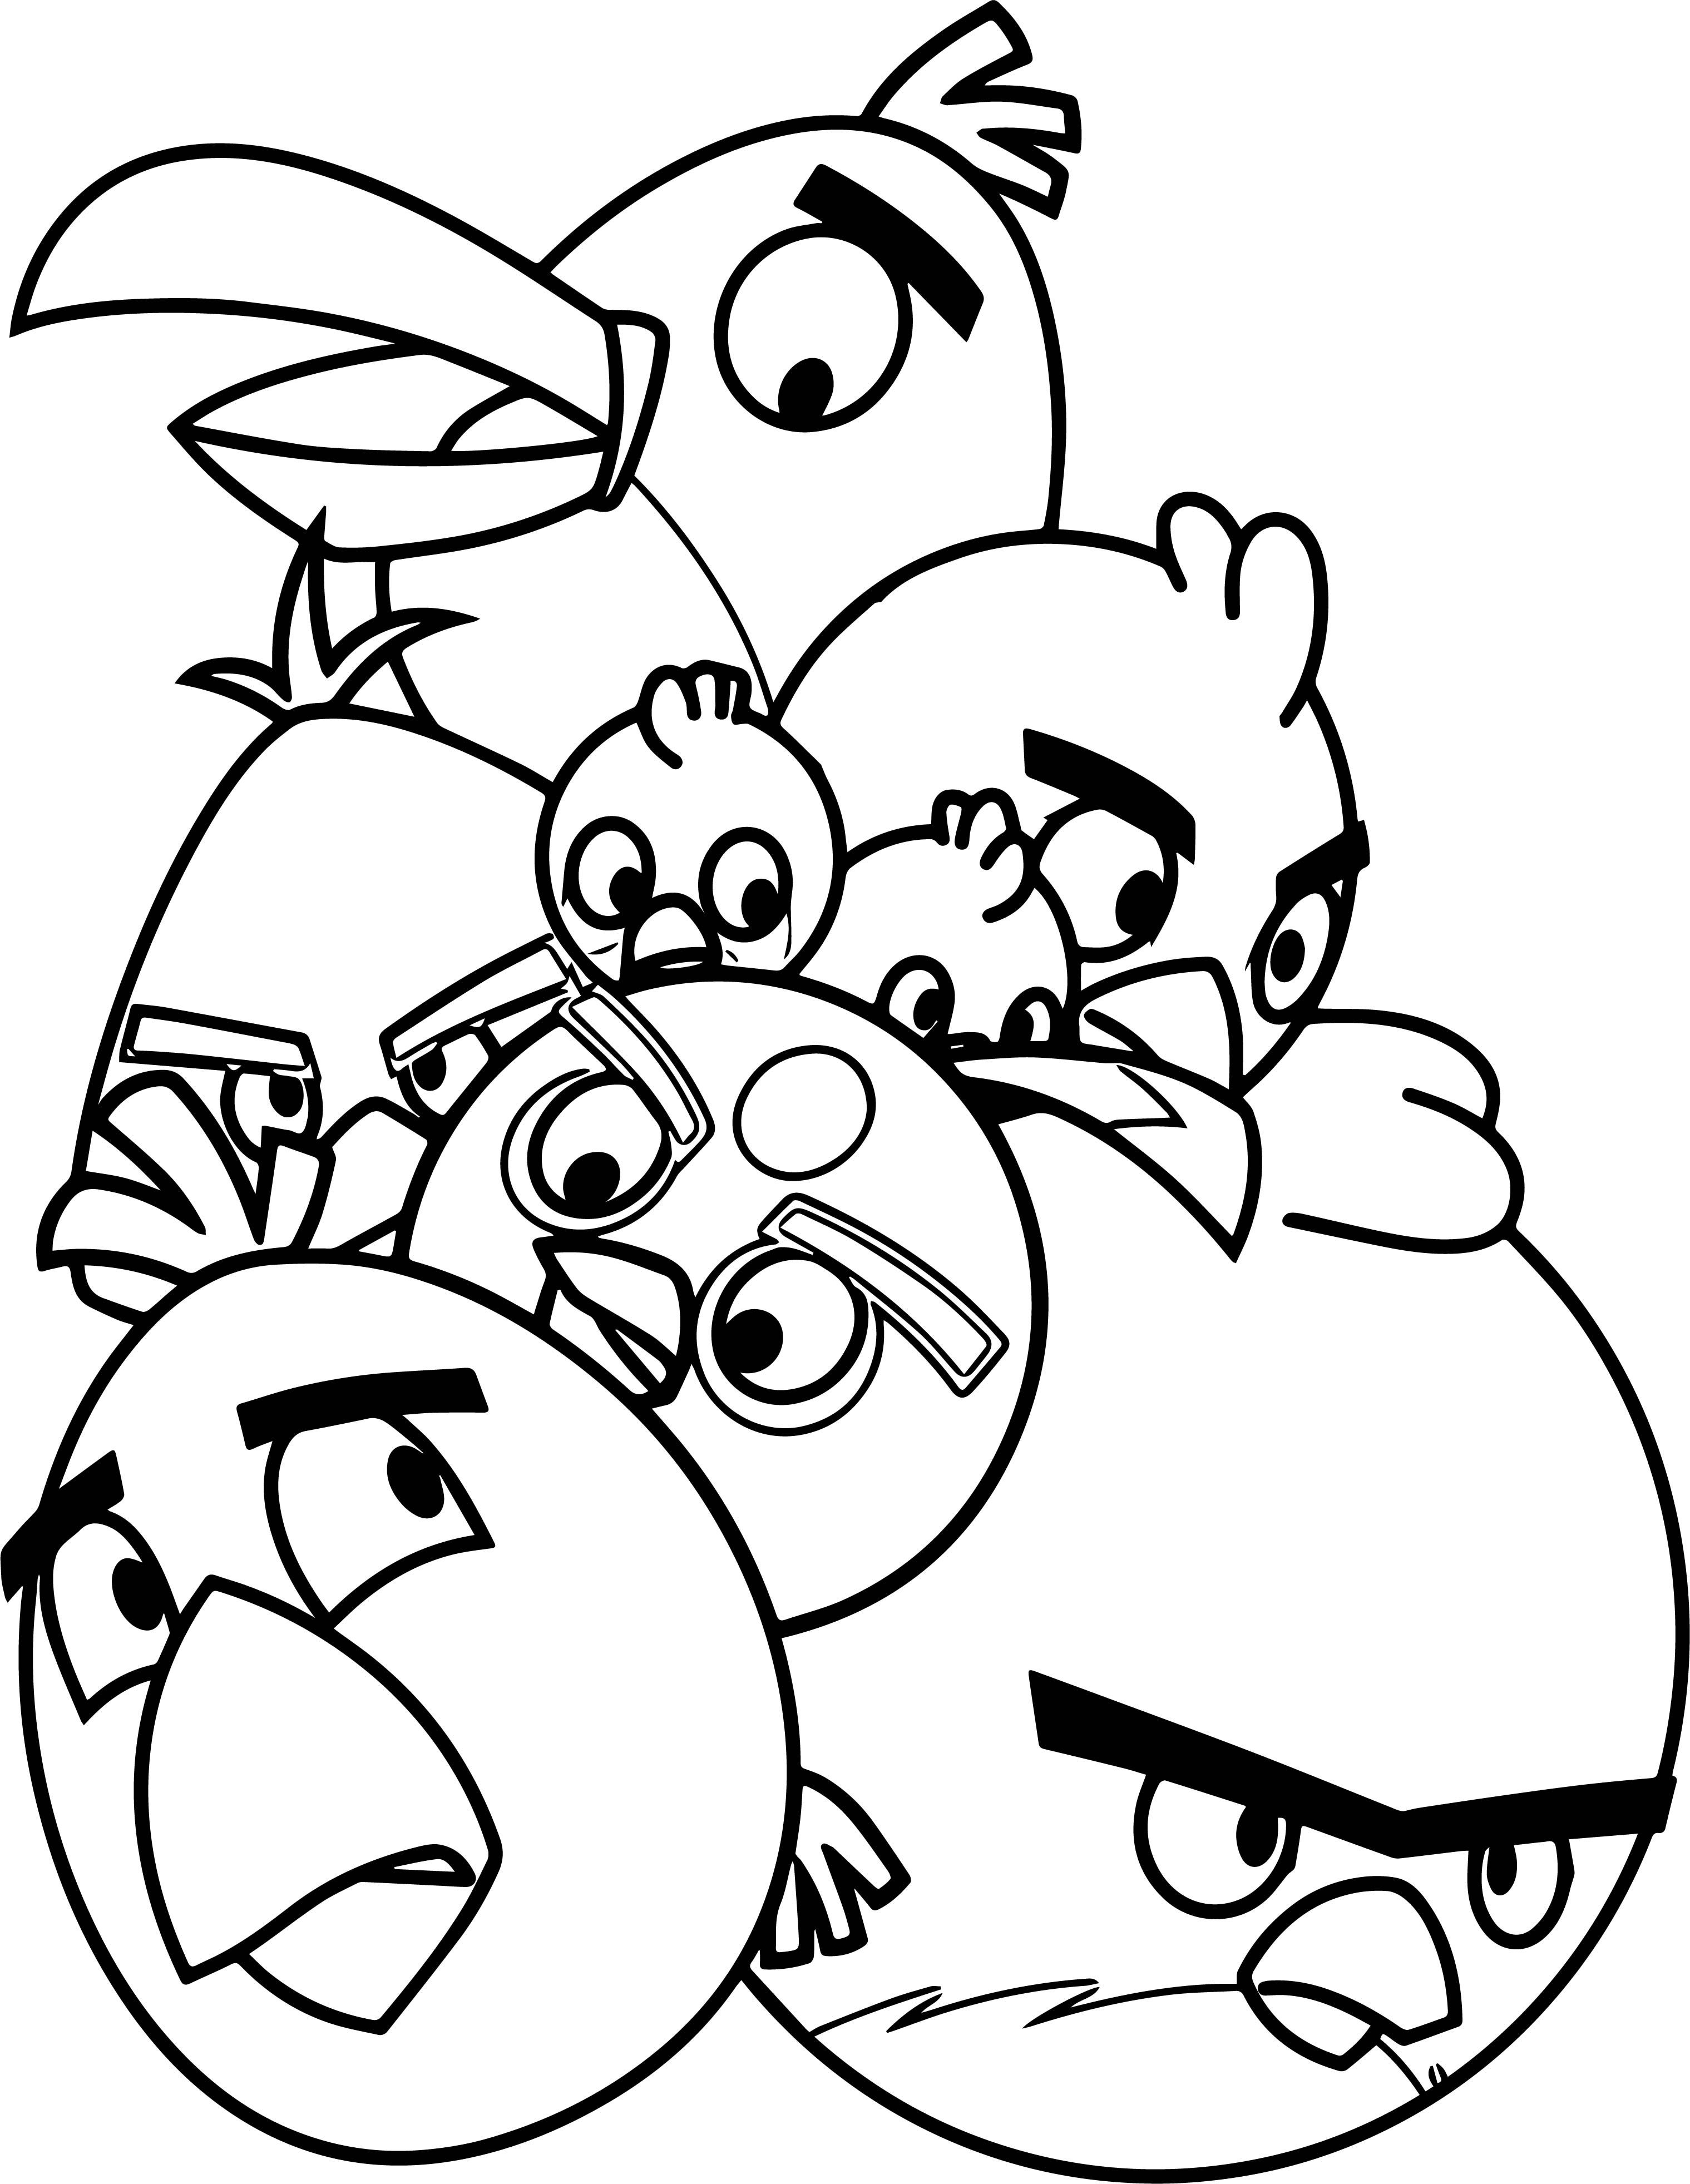 Nice Pile Of Angry Birds Coloring Page